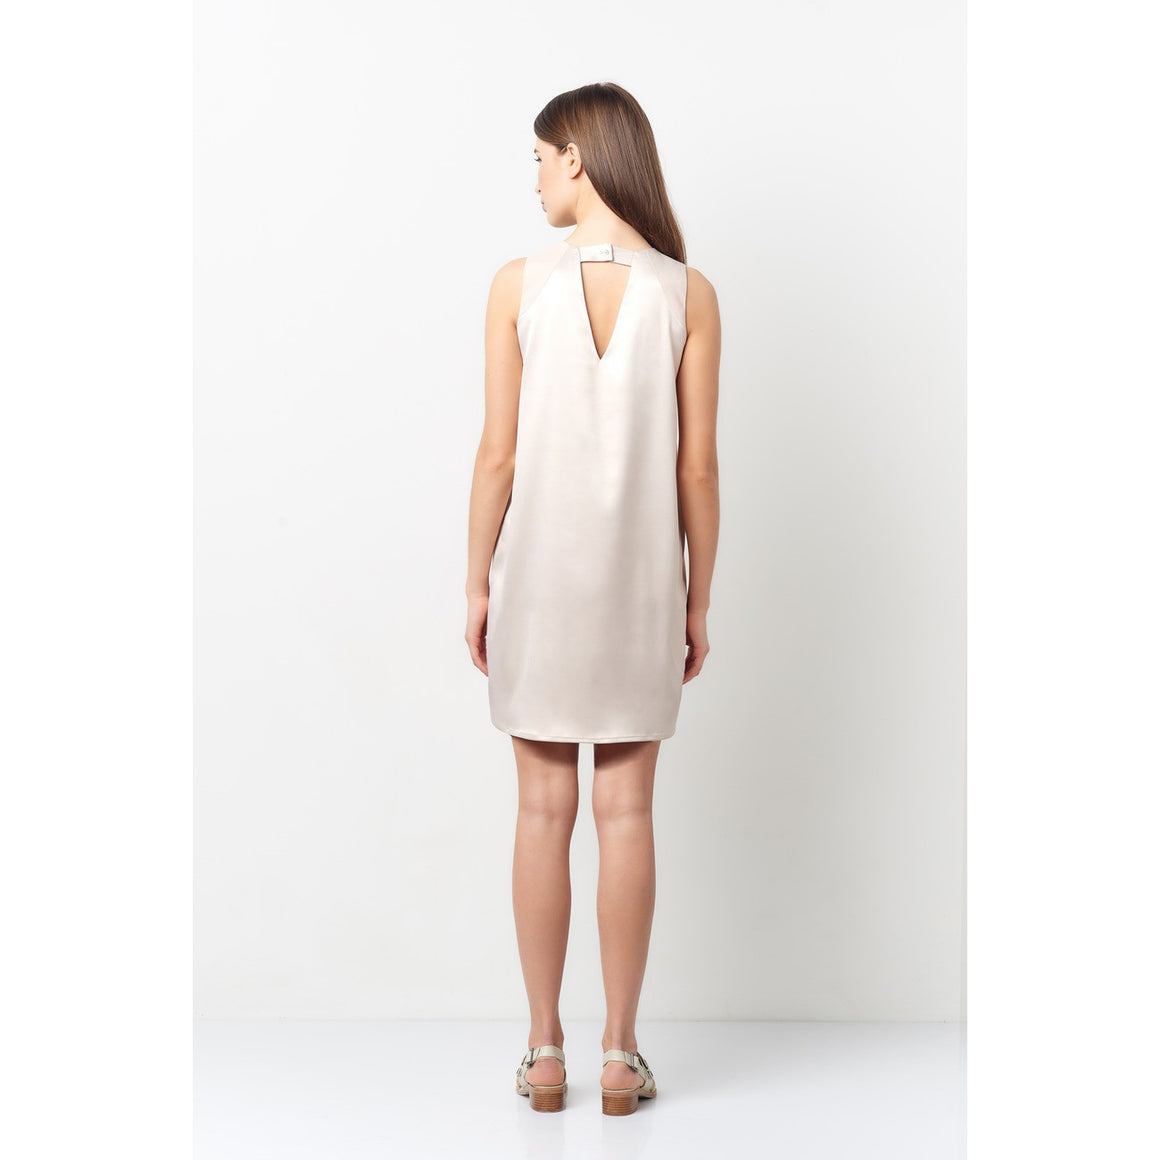 Victoria Nude 3 Line V-Neck Dress